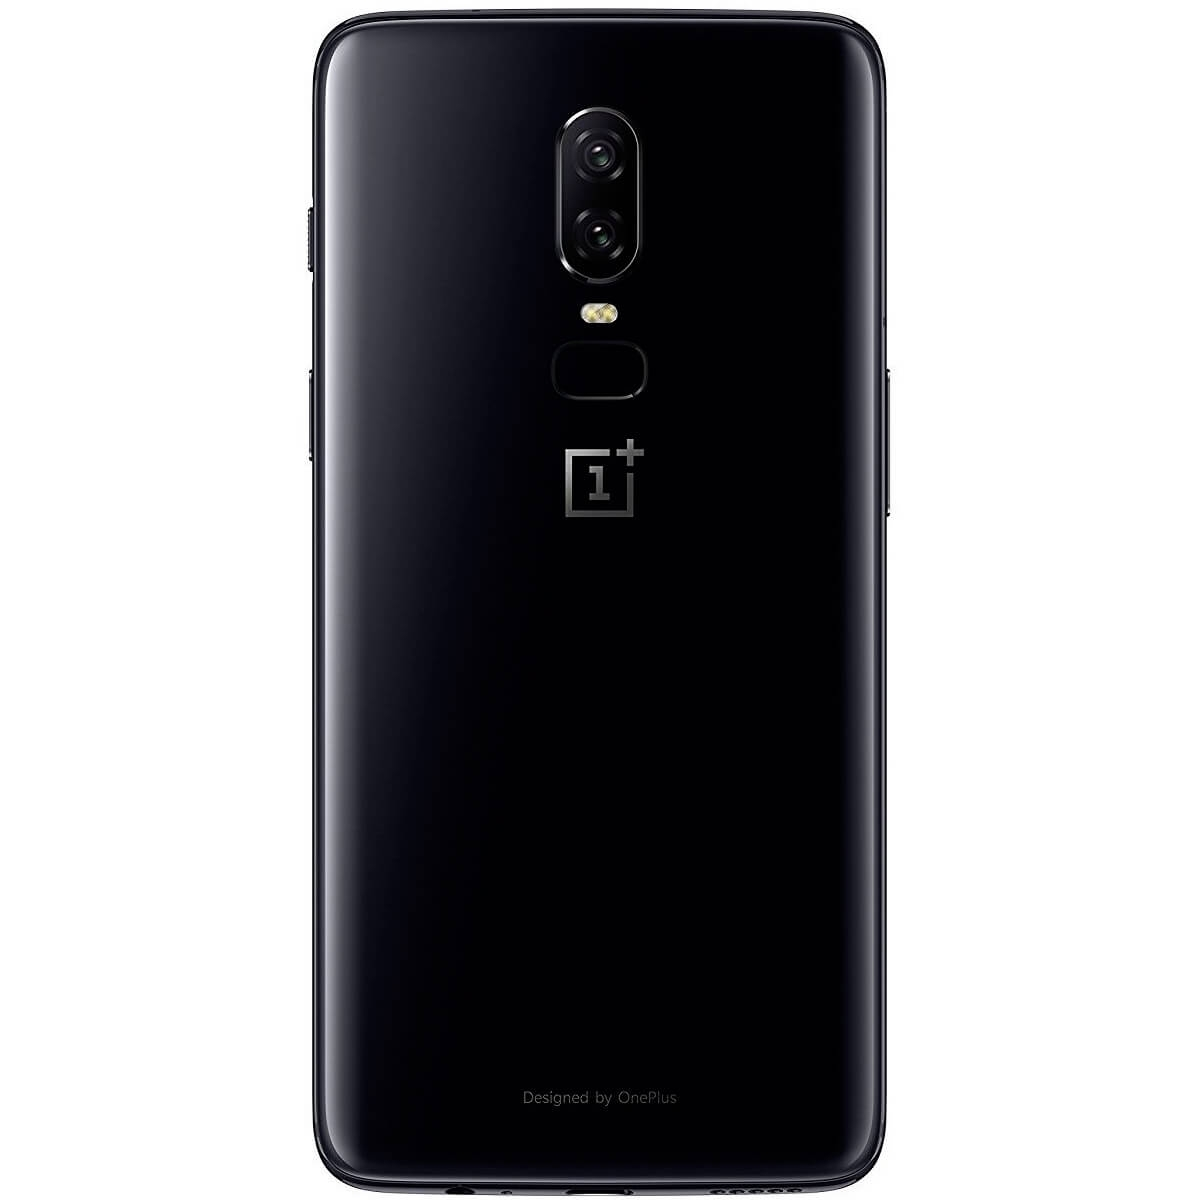 Oneplus 6 difference between a6000 and a6003